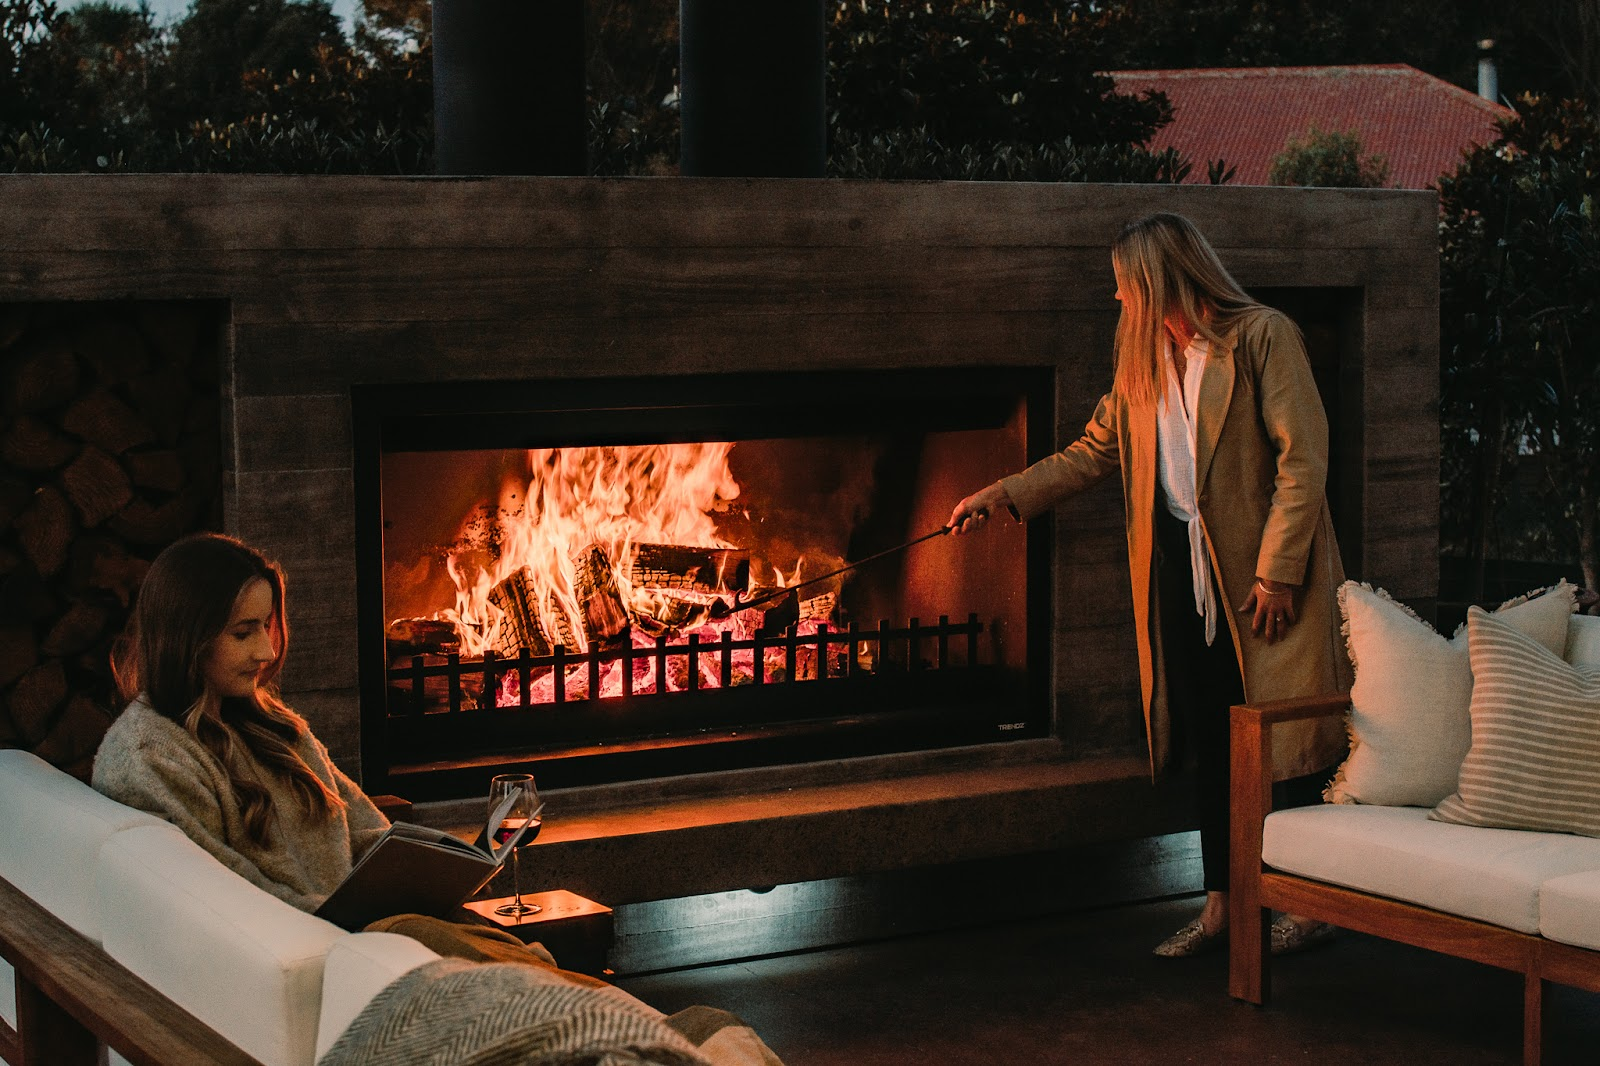 Twin Peak large outdoor fireplace by Trendz